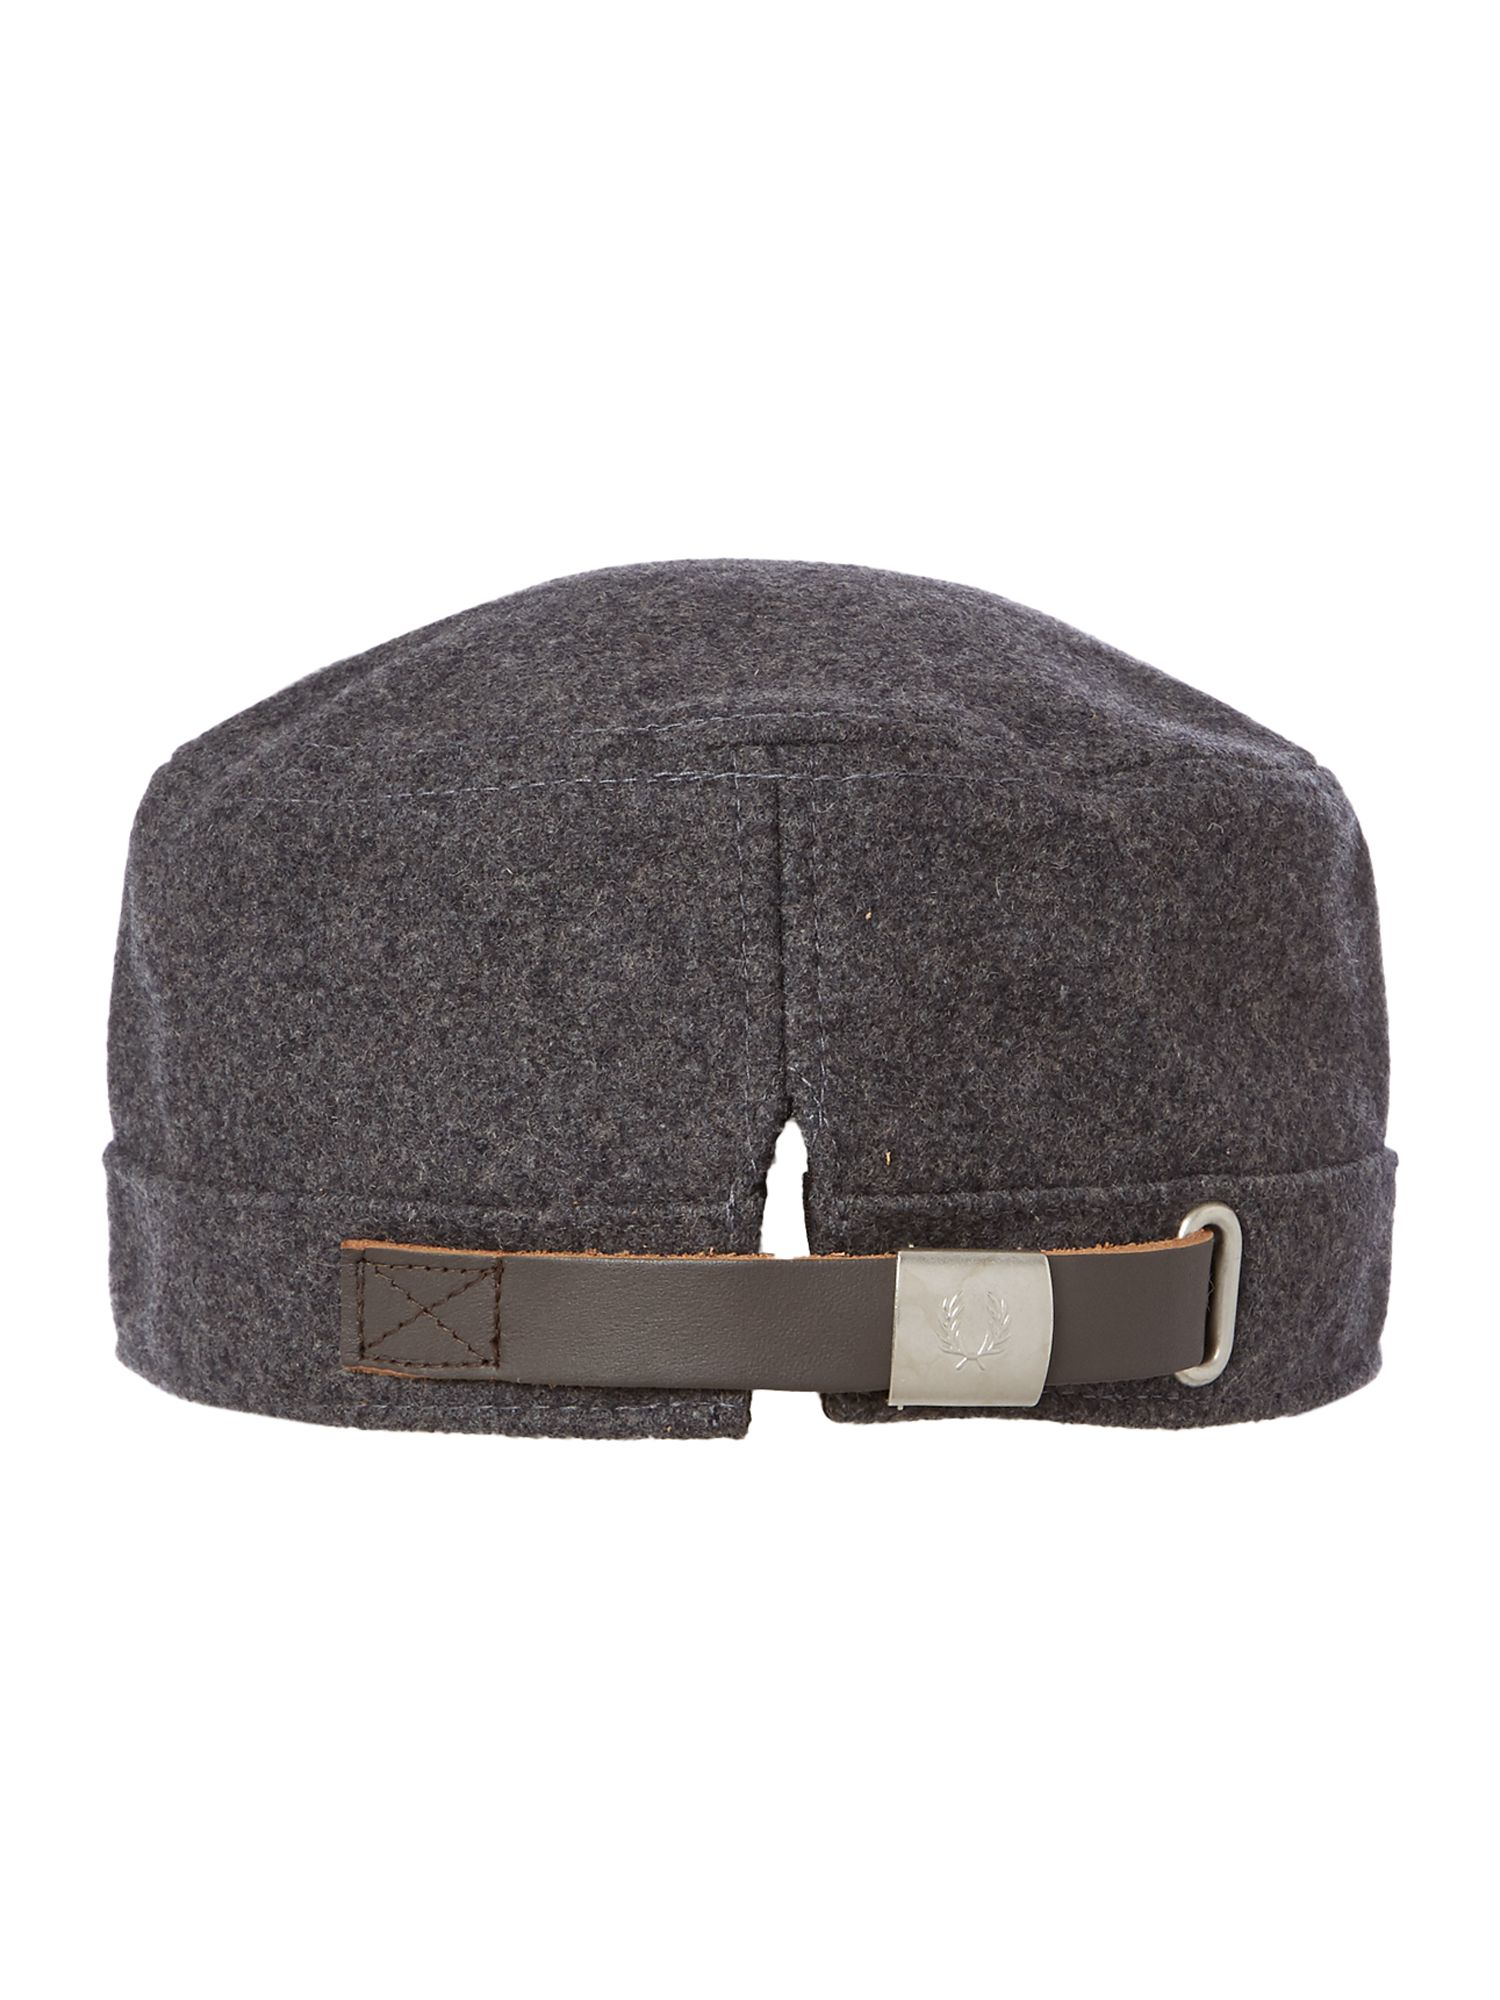 fred perry boiled wool train driver cap in gray for men lyst. Black Bedroom Furniture Sets. Home Design Ideas